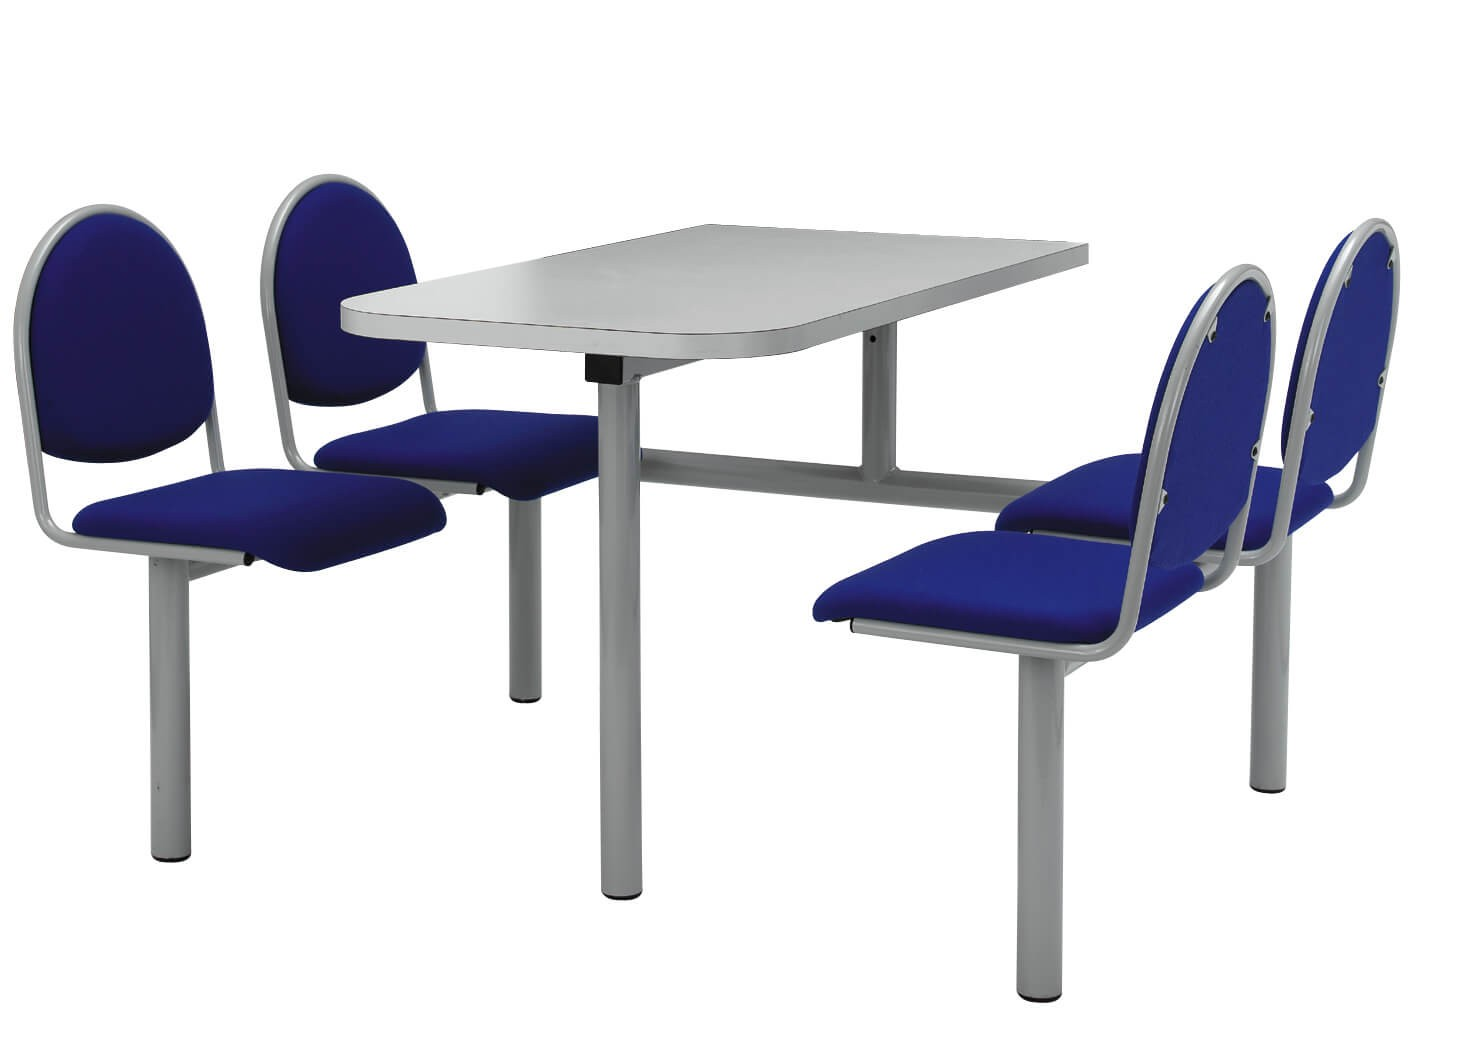 Canteen Table with Metal Frame & Seats